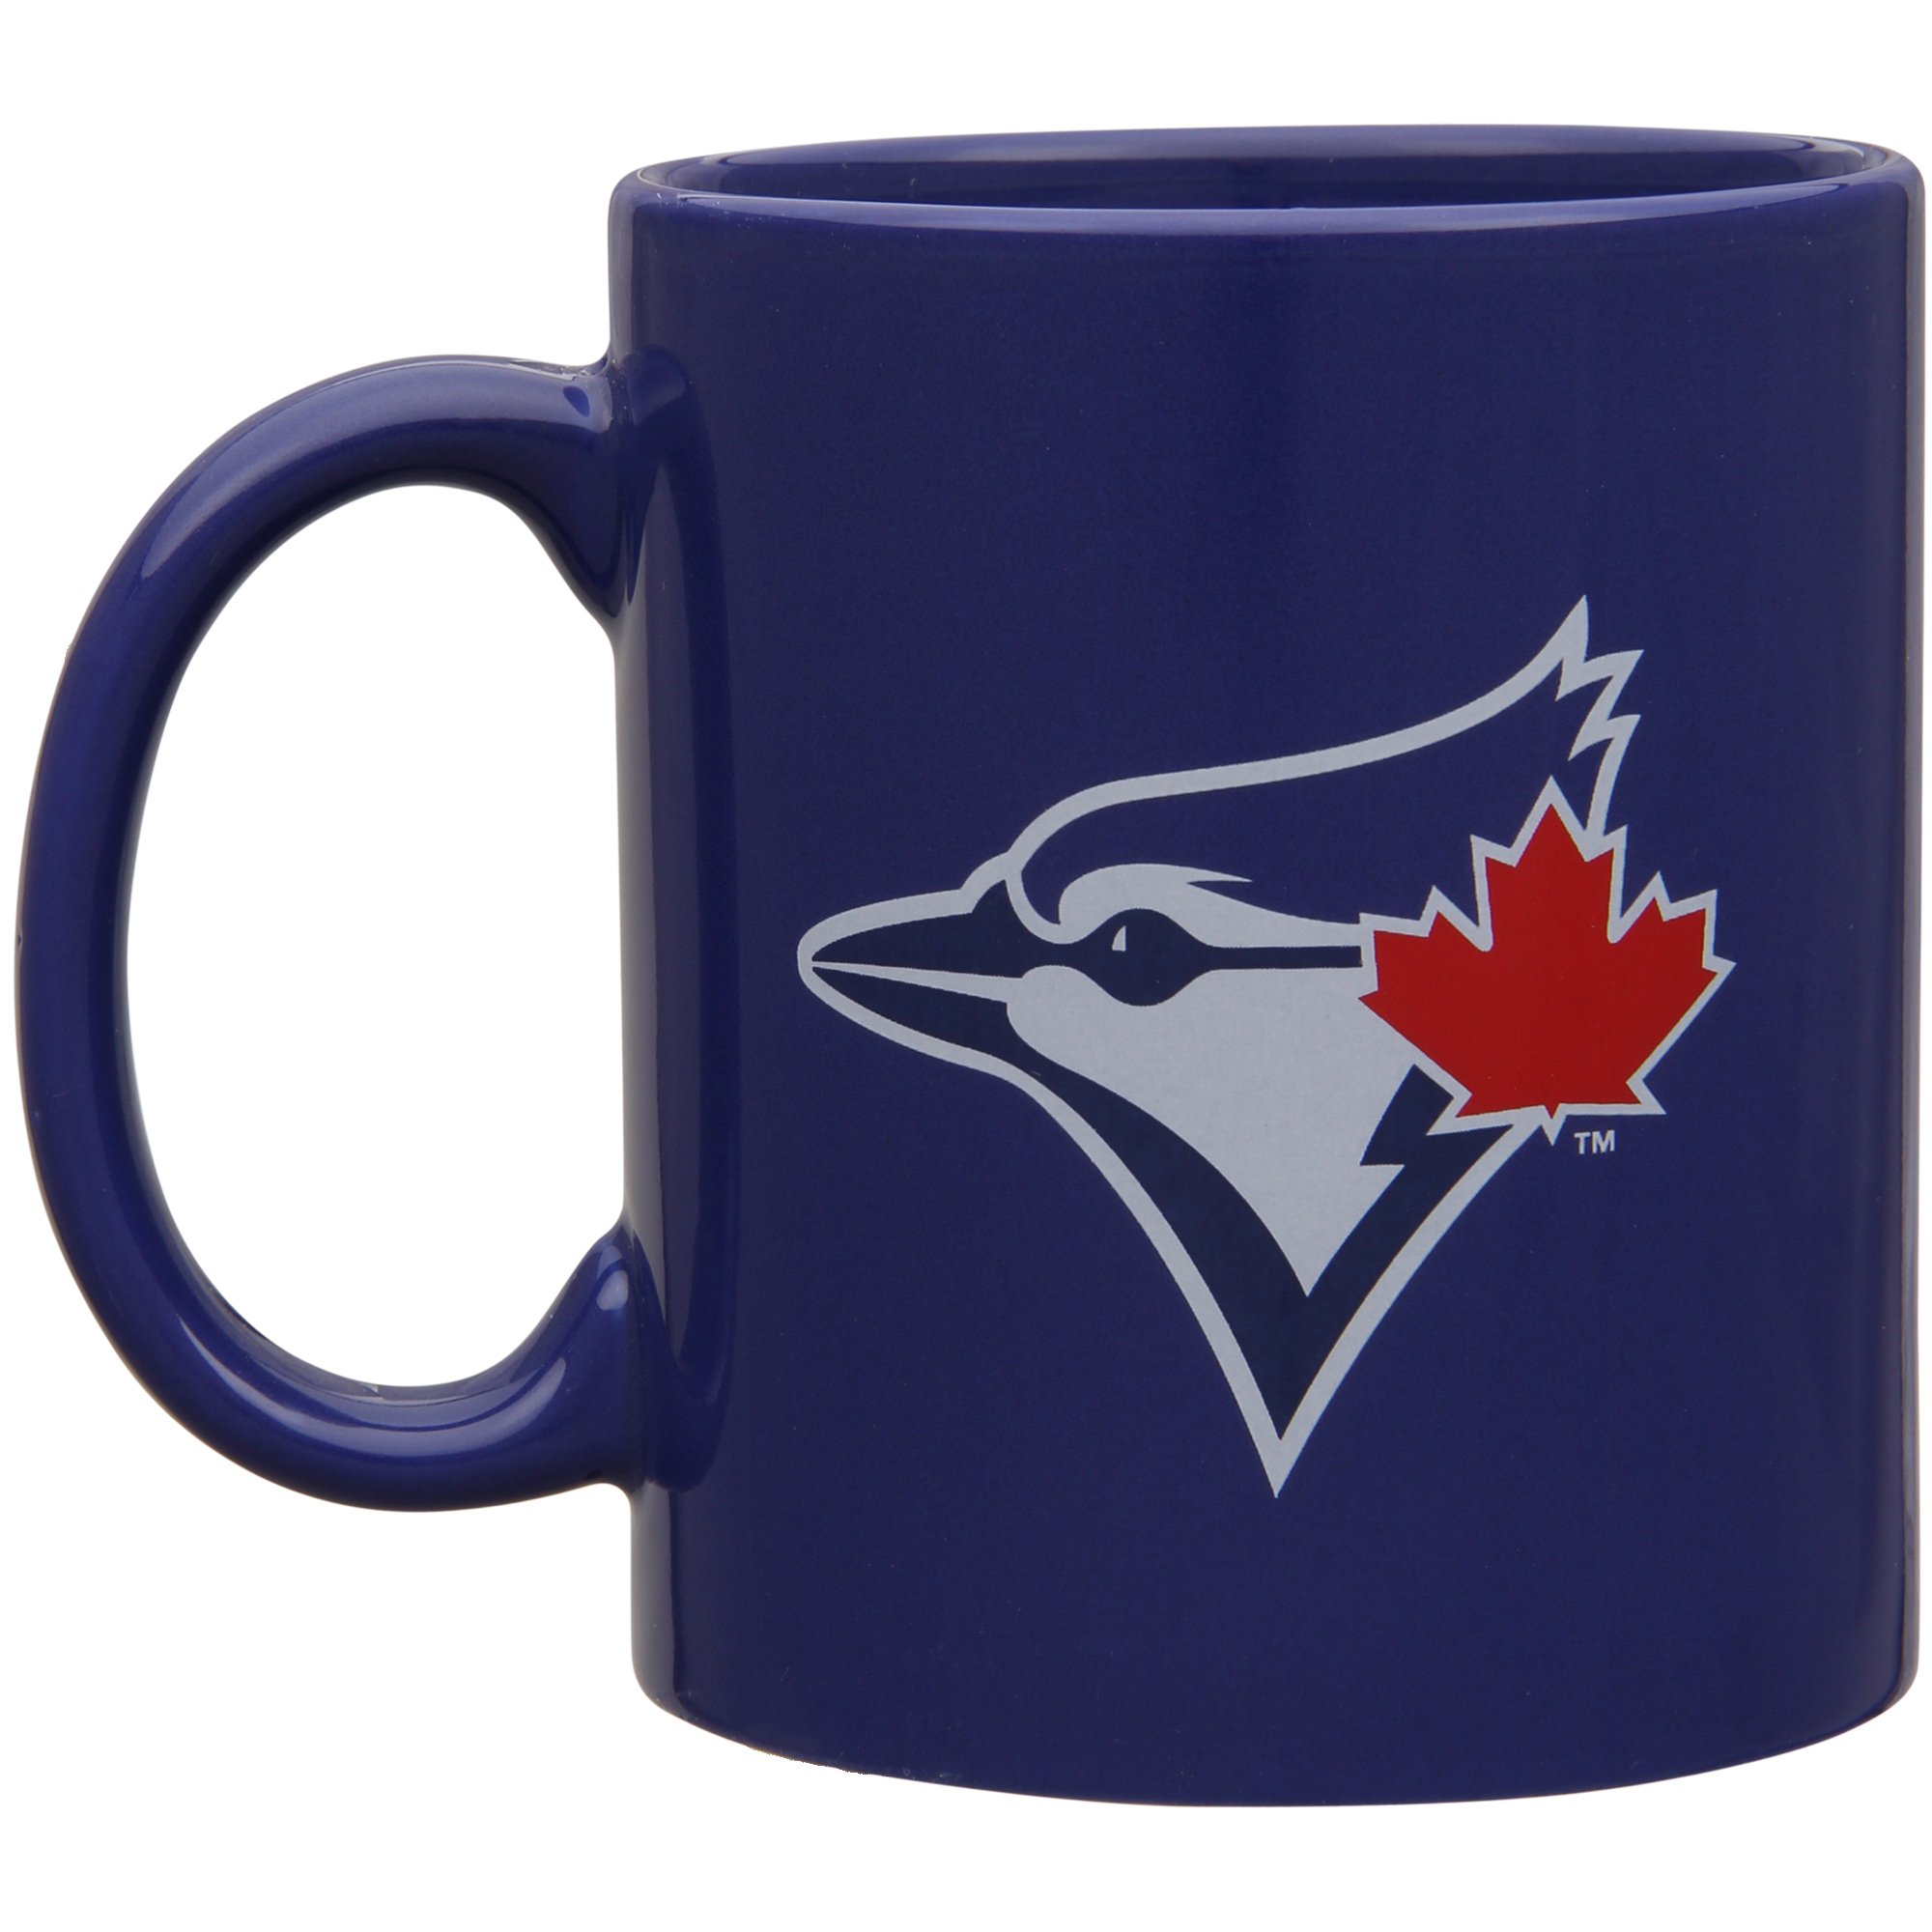 Toronto Blue Jays 11oz. Rise Up Mug - No Size